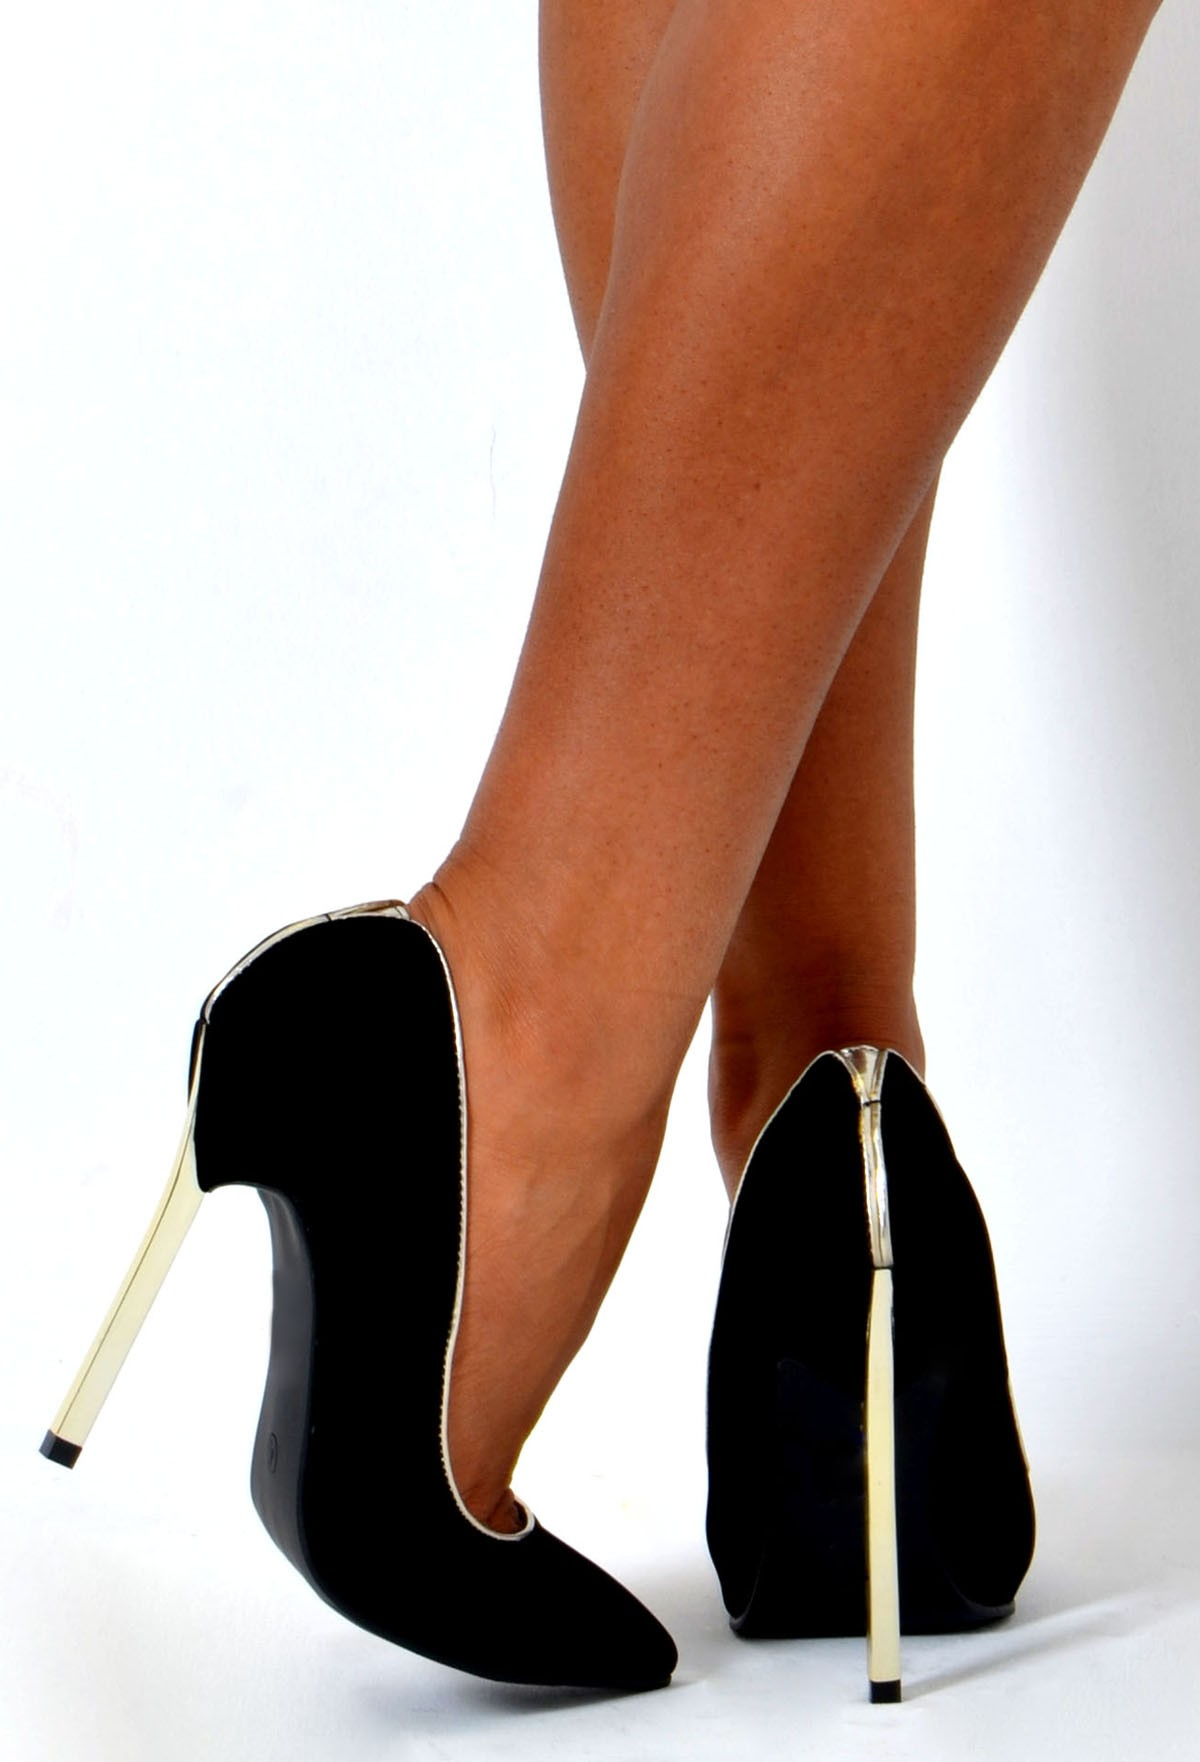 Black And Gold Shoes Heels ndwN0vE4